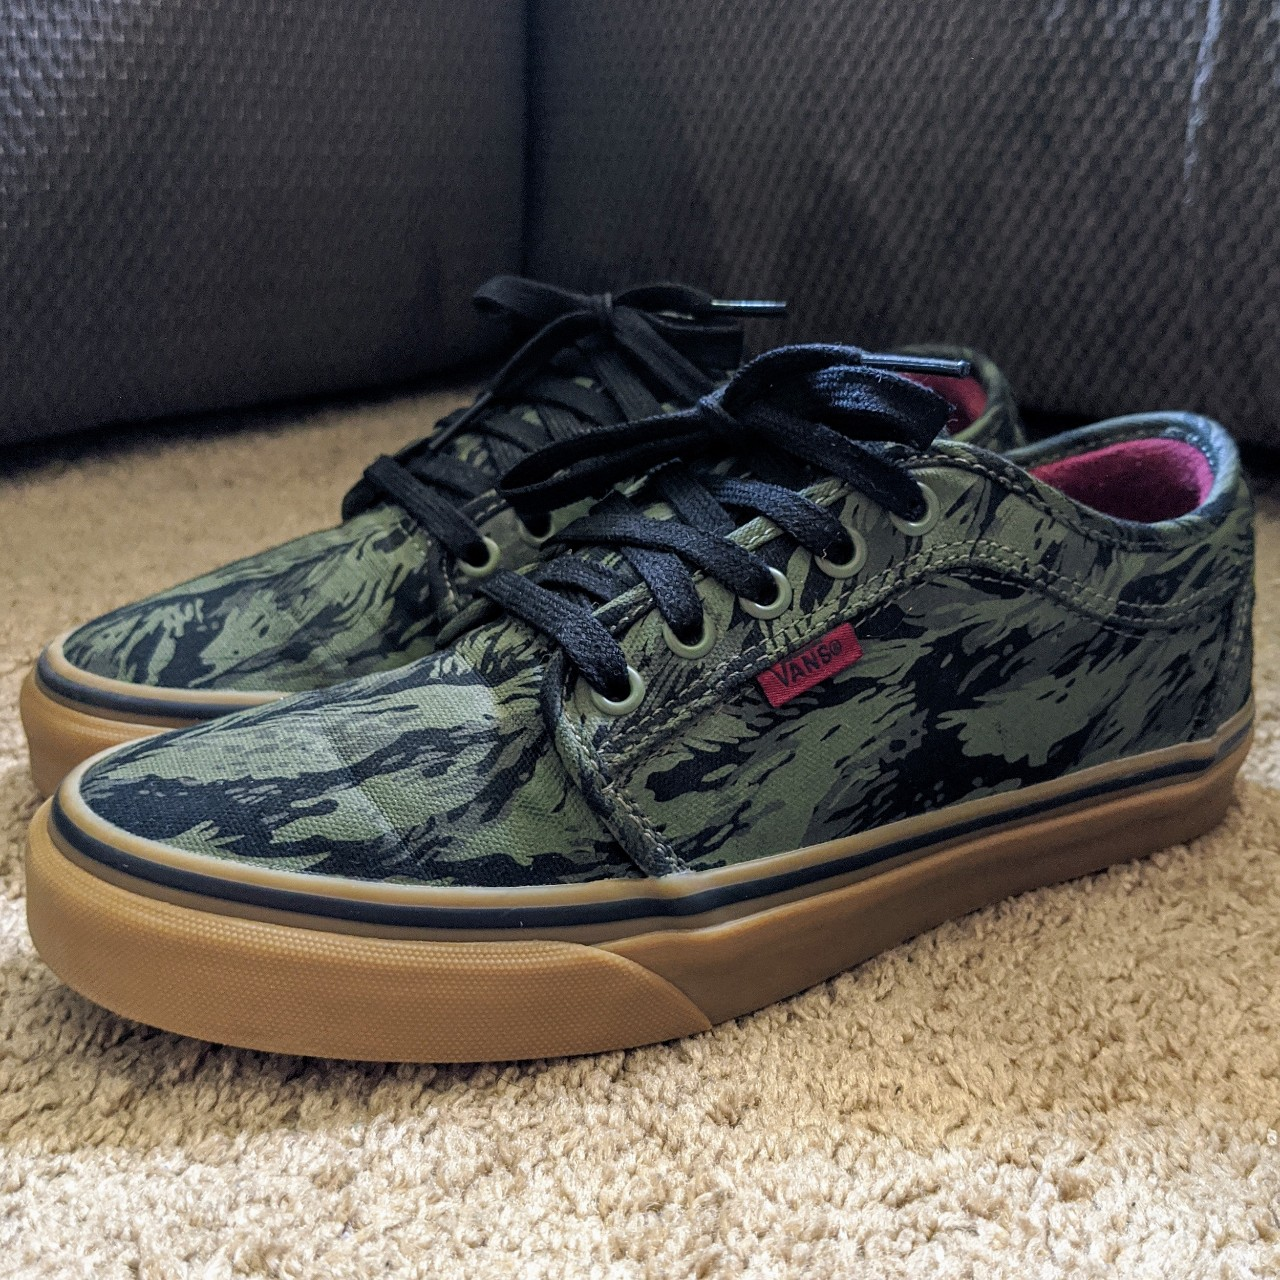 Vans Chukka Low Skate Shoes in Jungle